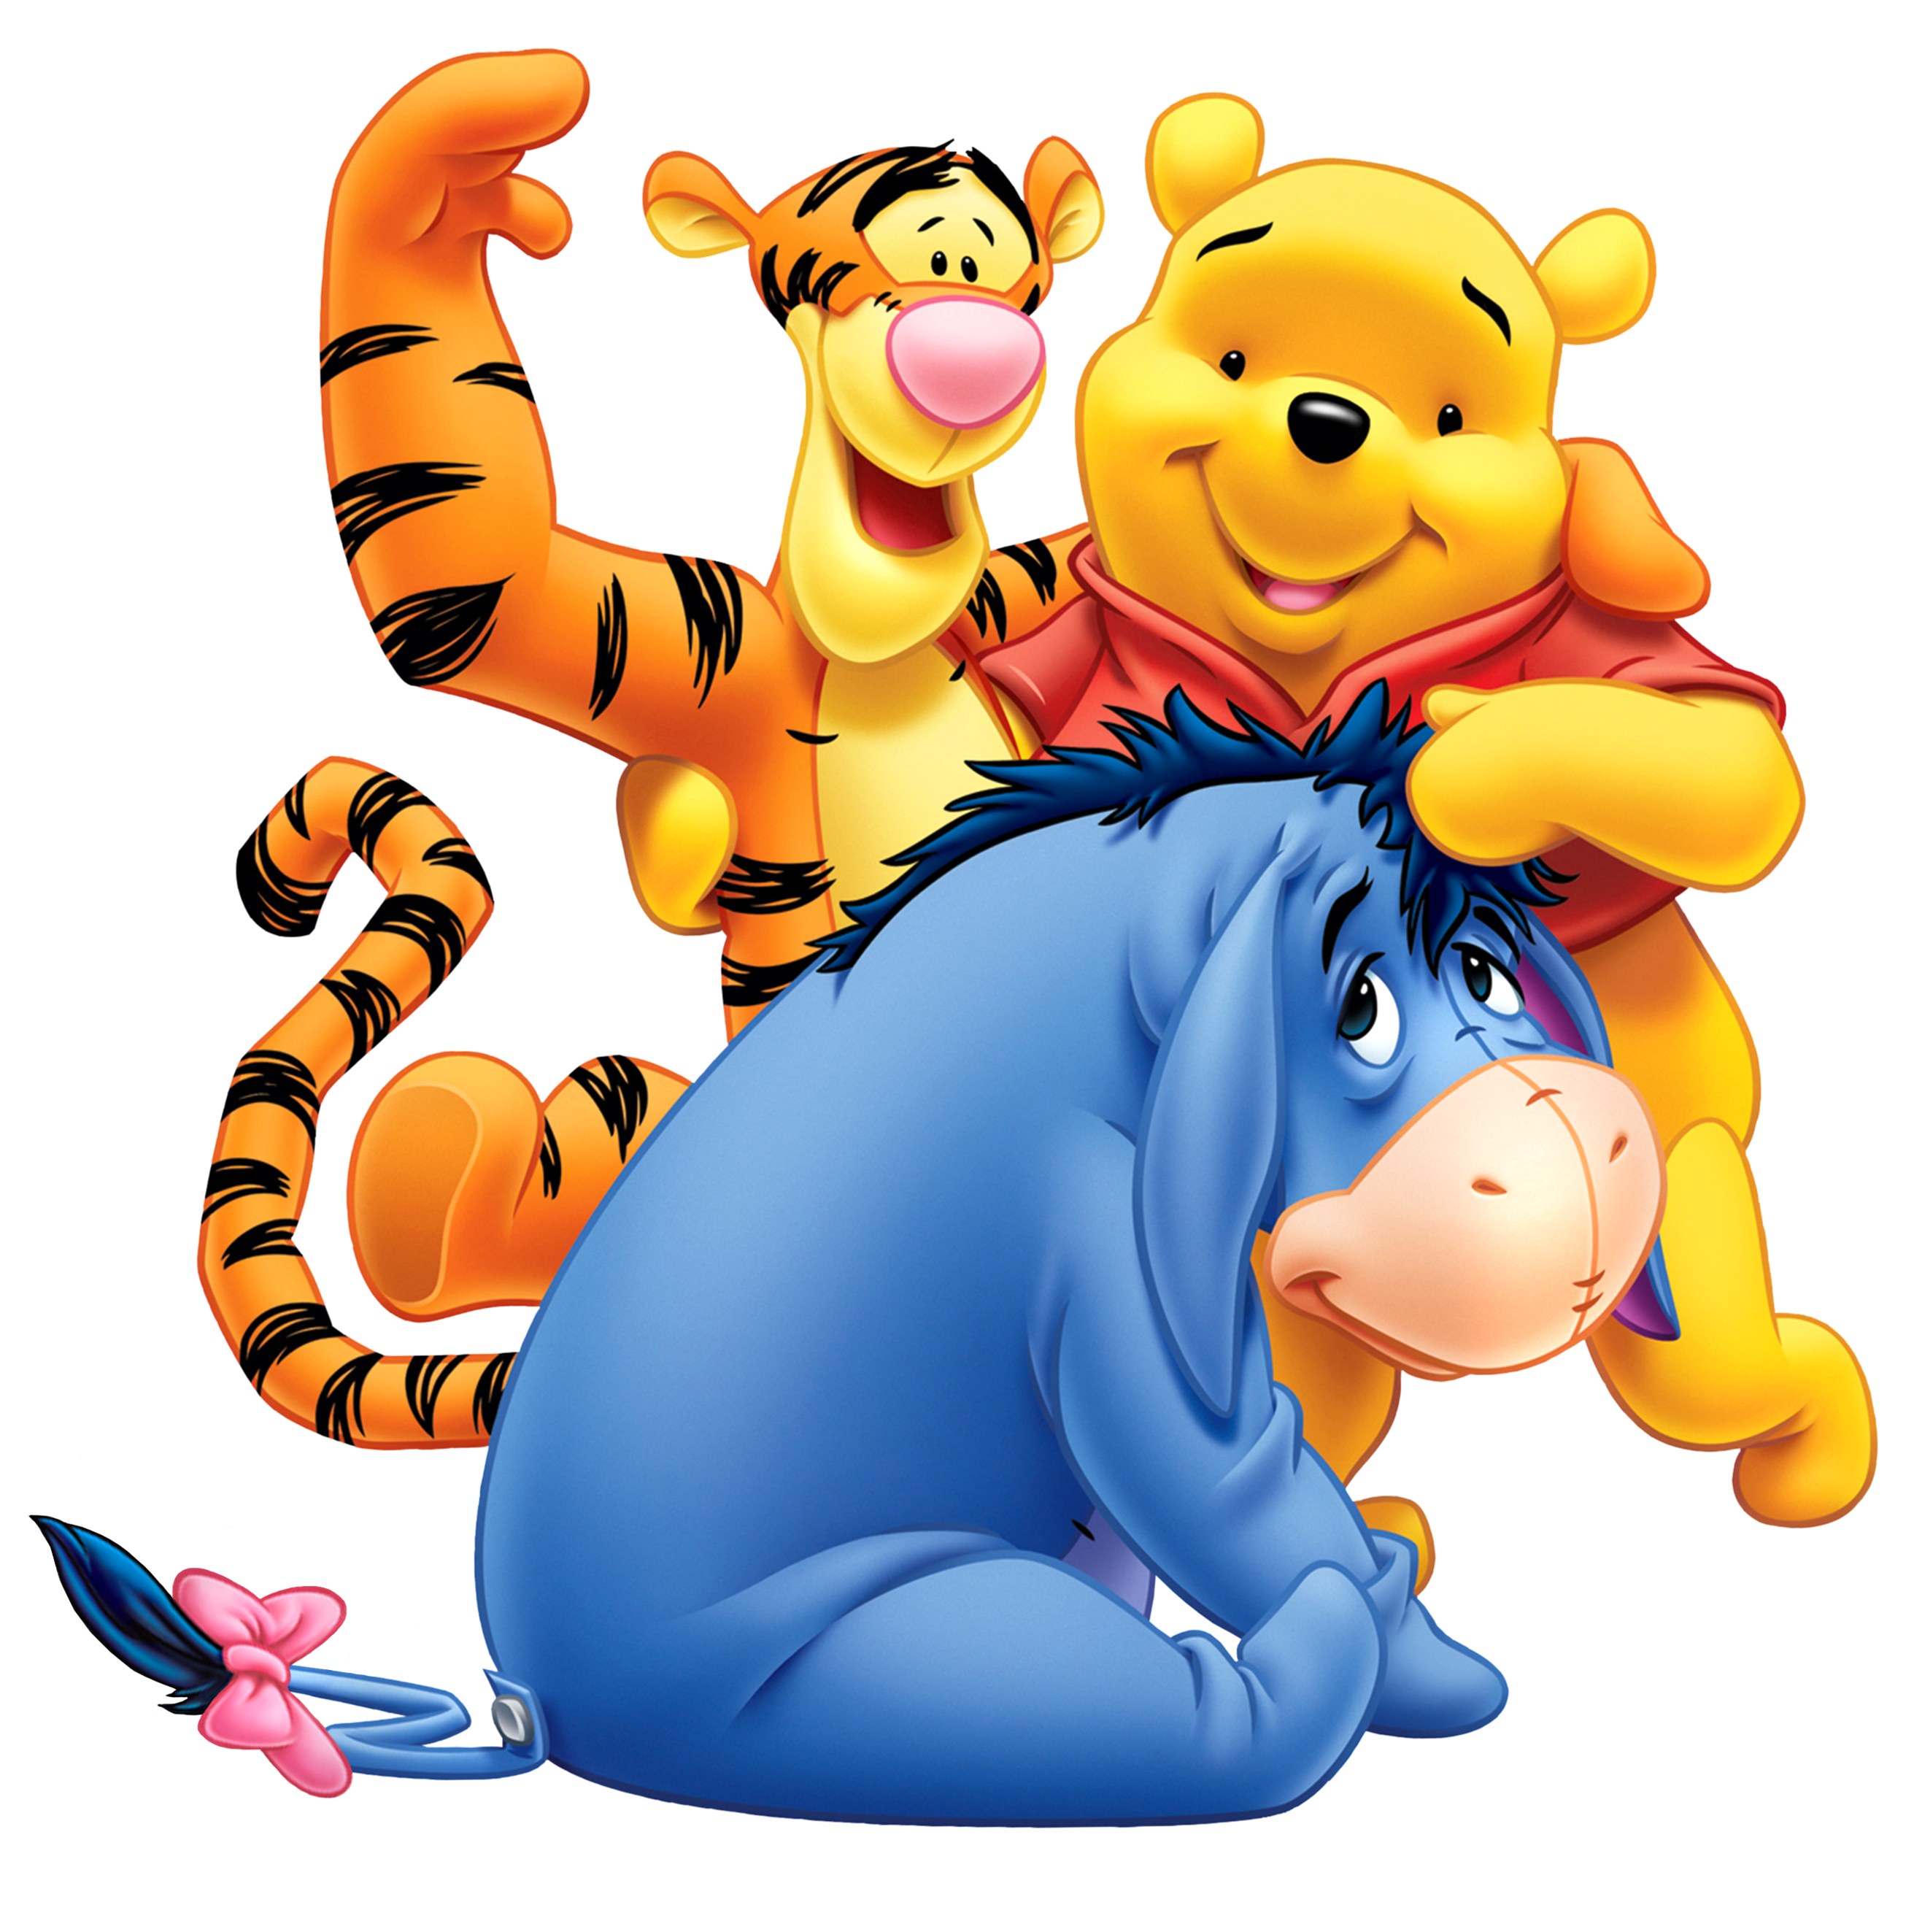 winnie the pooh, tiger clipart pooh pencil and color tiger clipart pooh #17392